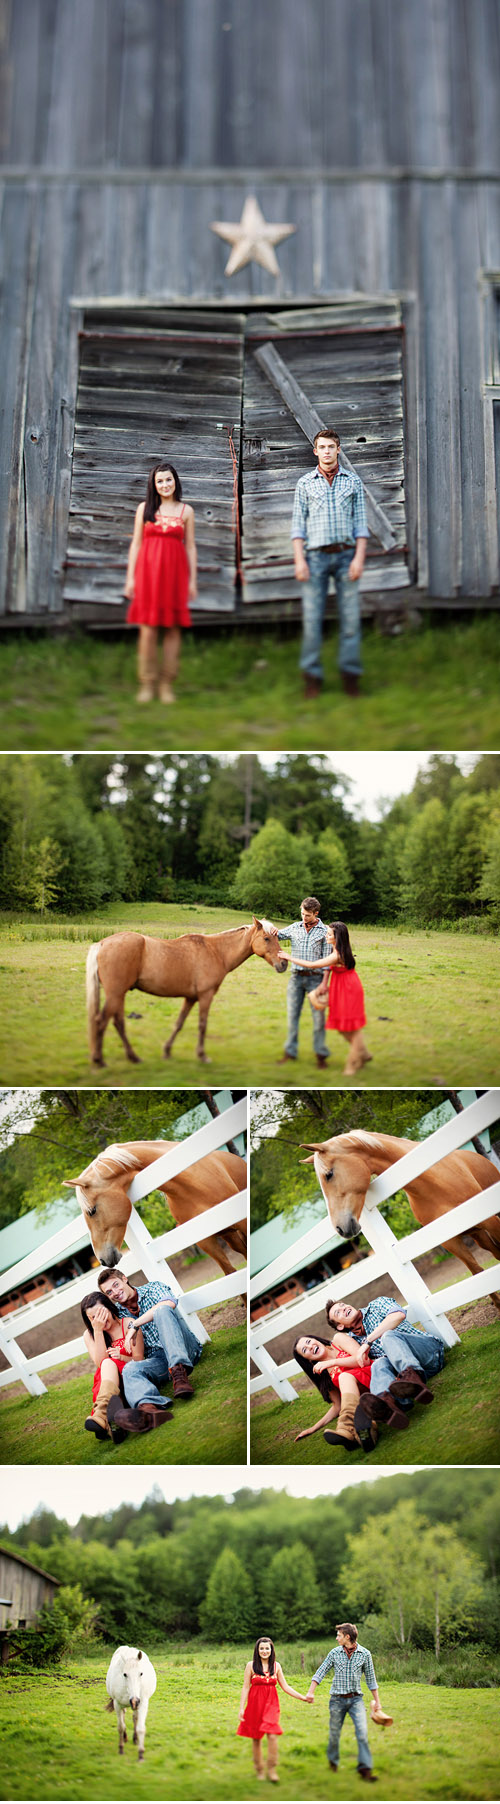 country style engagement photo session from Daniel Usenko